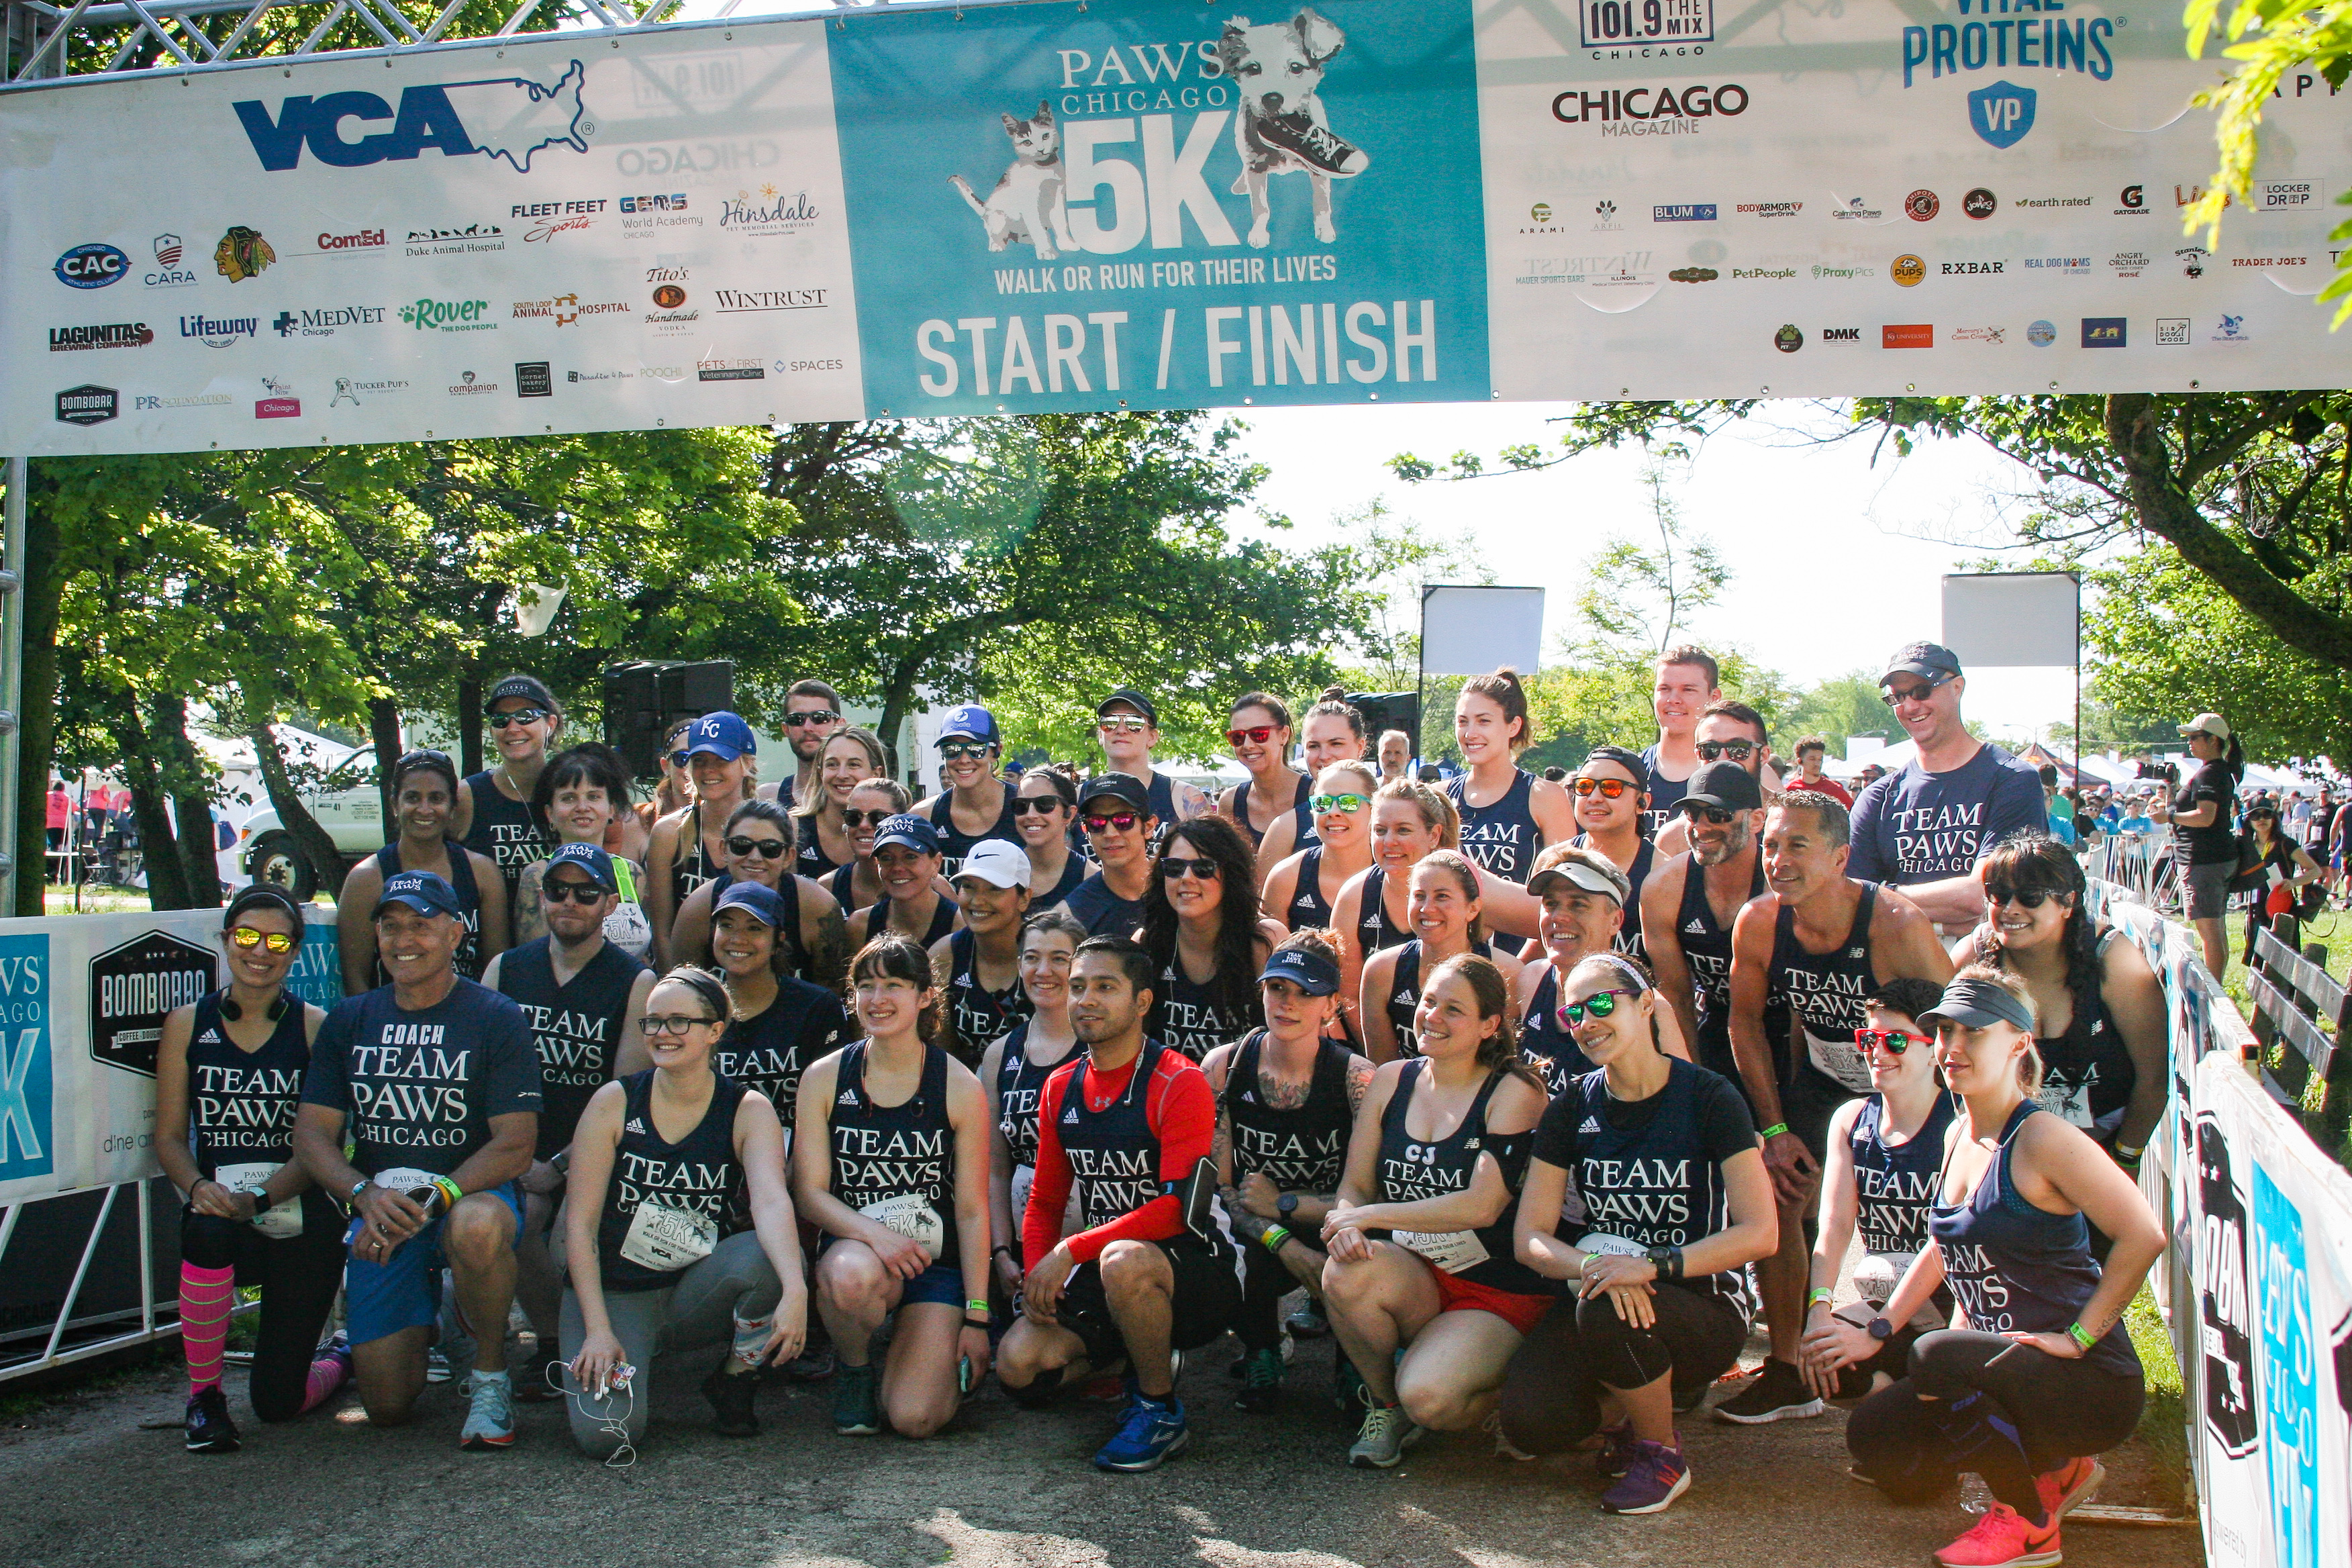 90acb280869d3 FREE Entry into the PAWS Chicago 5K Walk Run All TEAM PAWS Chicago members  ...